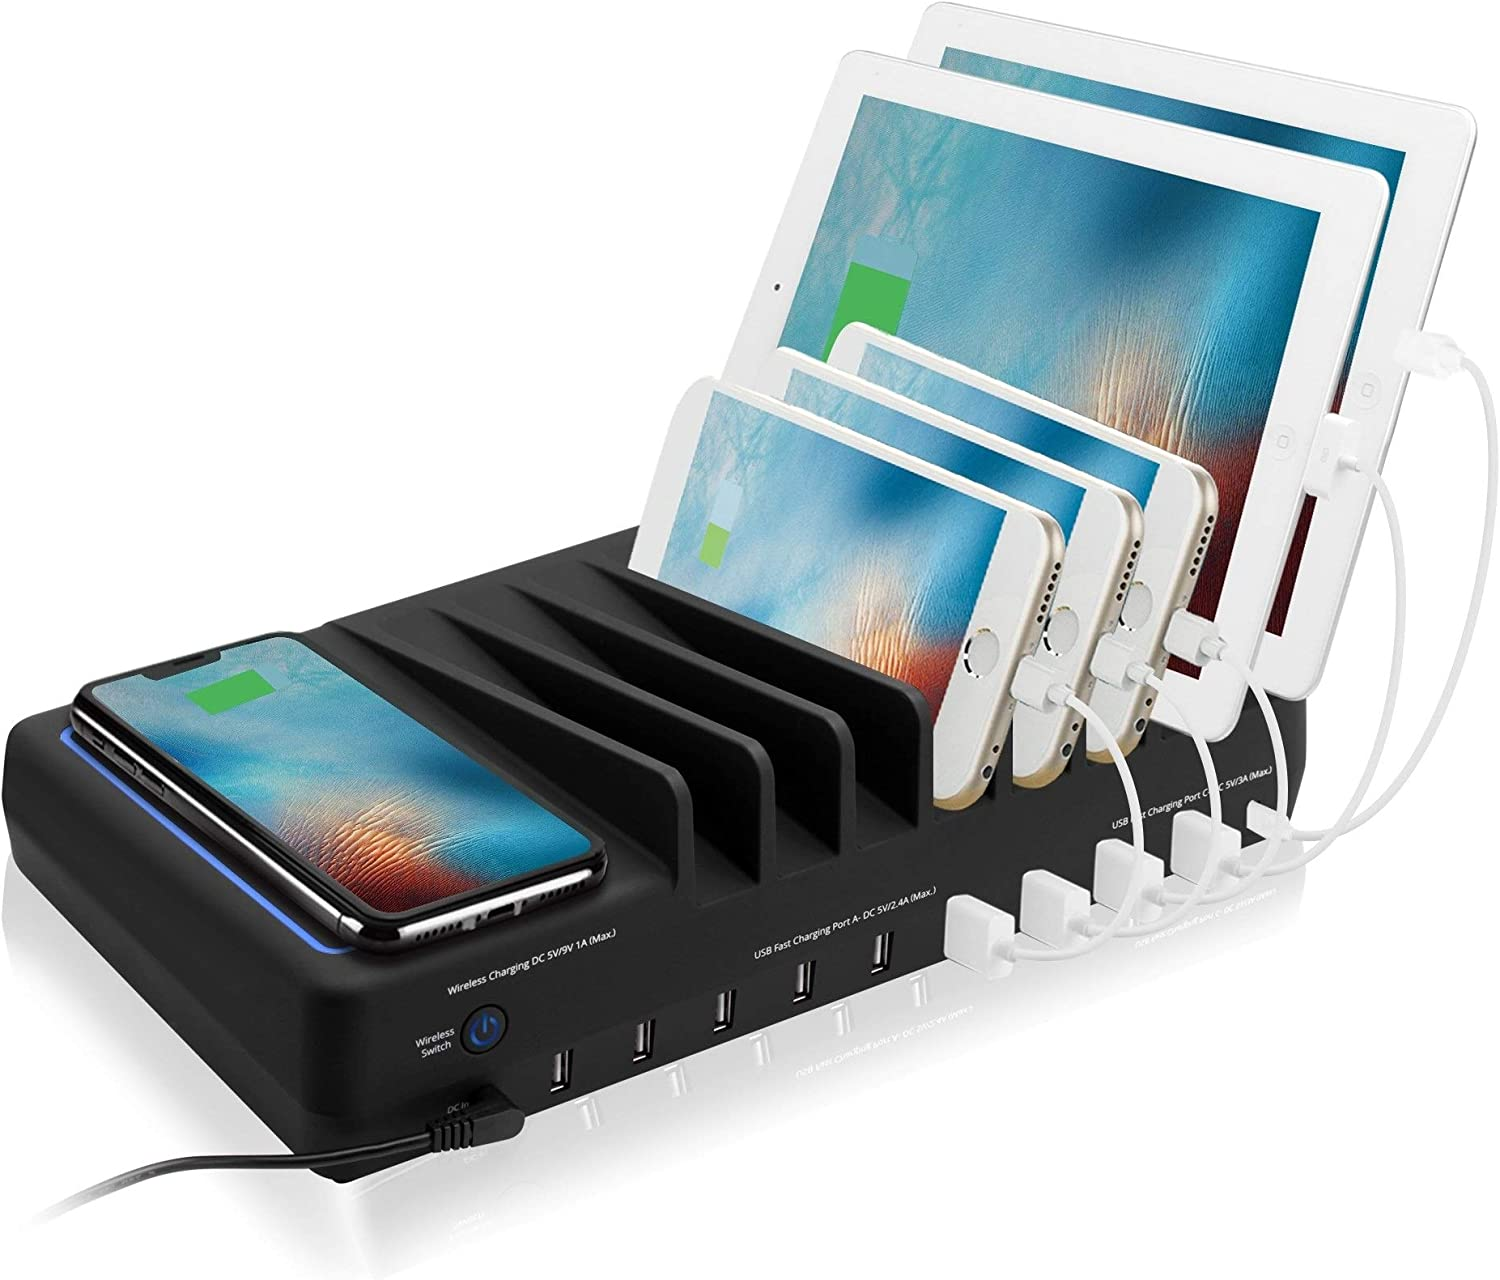 Amazon.com: SIIG 10 Port 90W USB Charging station with Qi wireless and USB  C Charging, Ambient Light Deck compatible with iPhone iPad Samsung Galaxy  Google Nexus